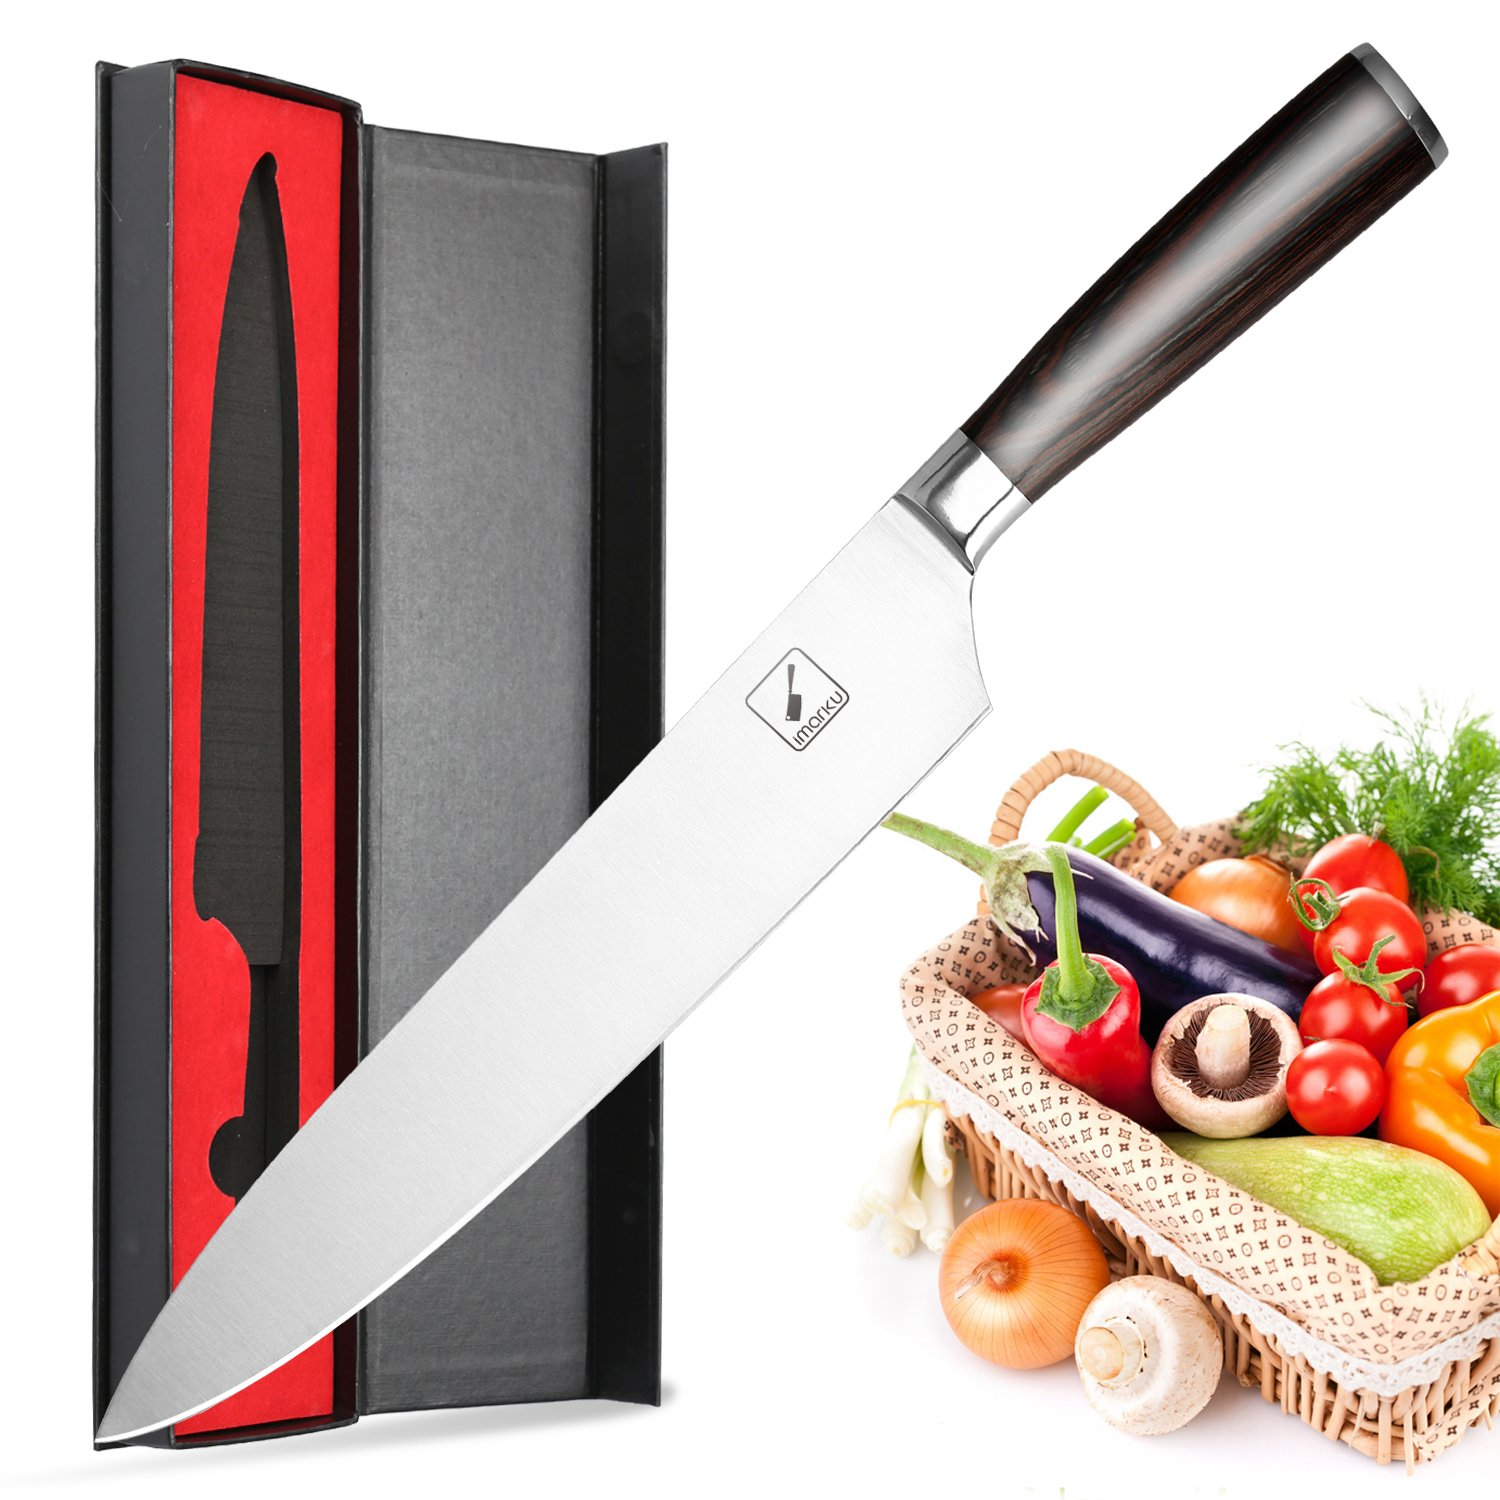 Imarku 10 Inch Pro Chef's Knife -High Carbon German Steel Cook's Knife with Ergonomic Handle